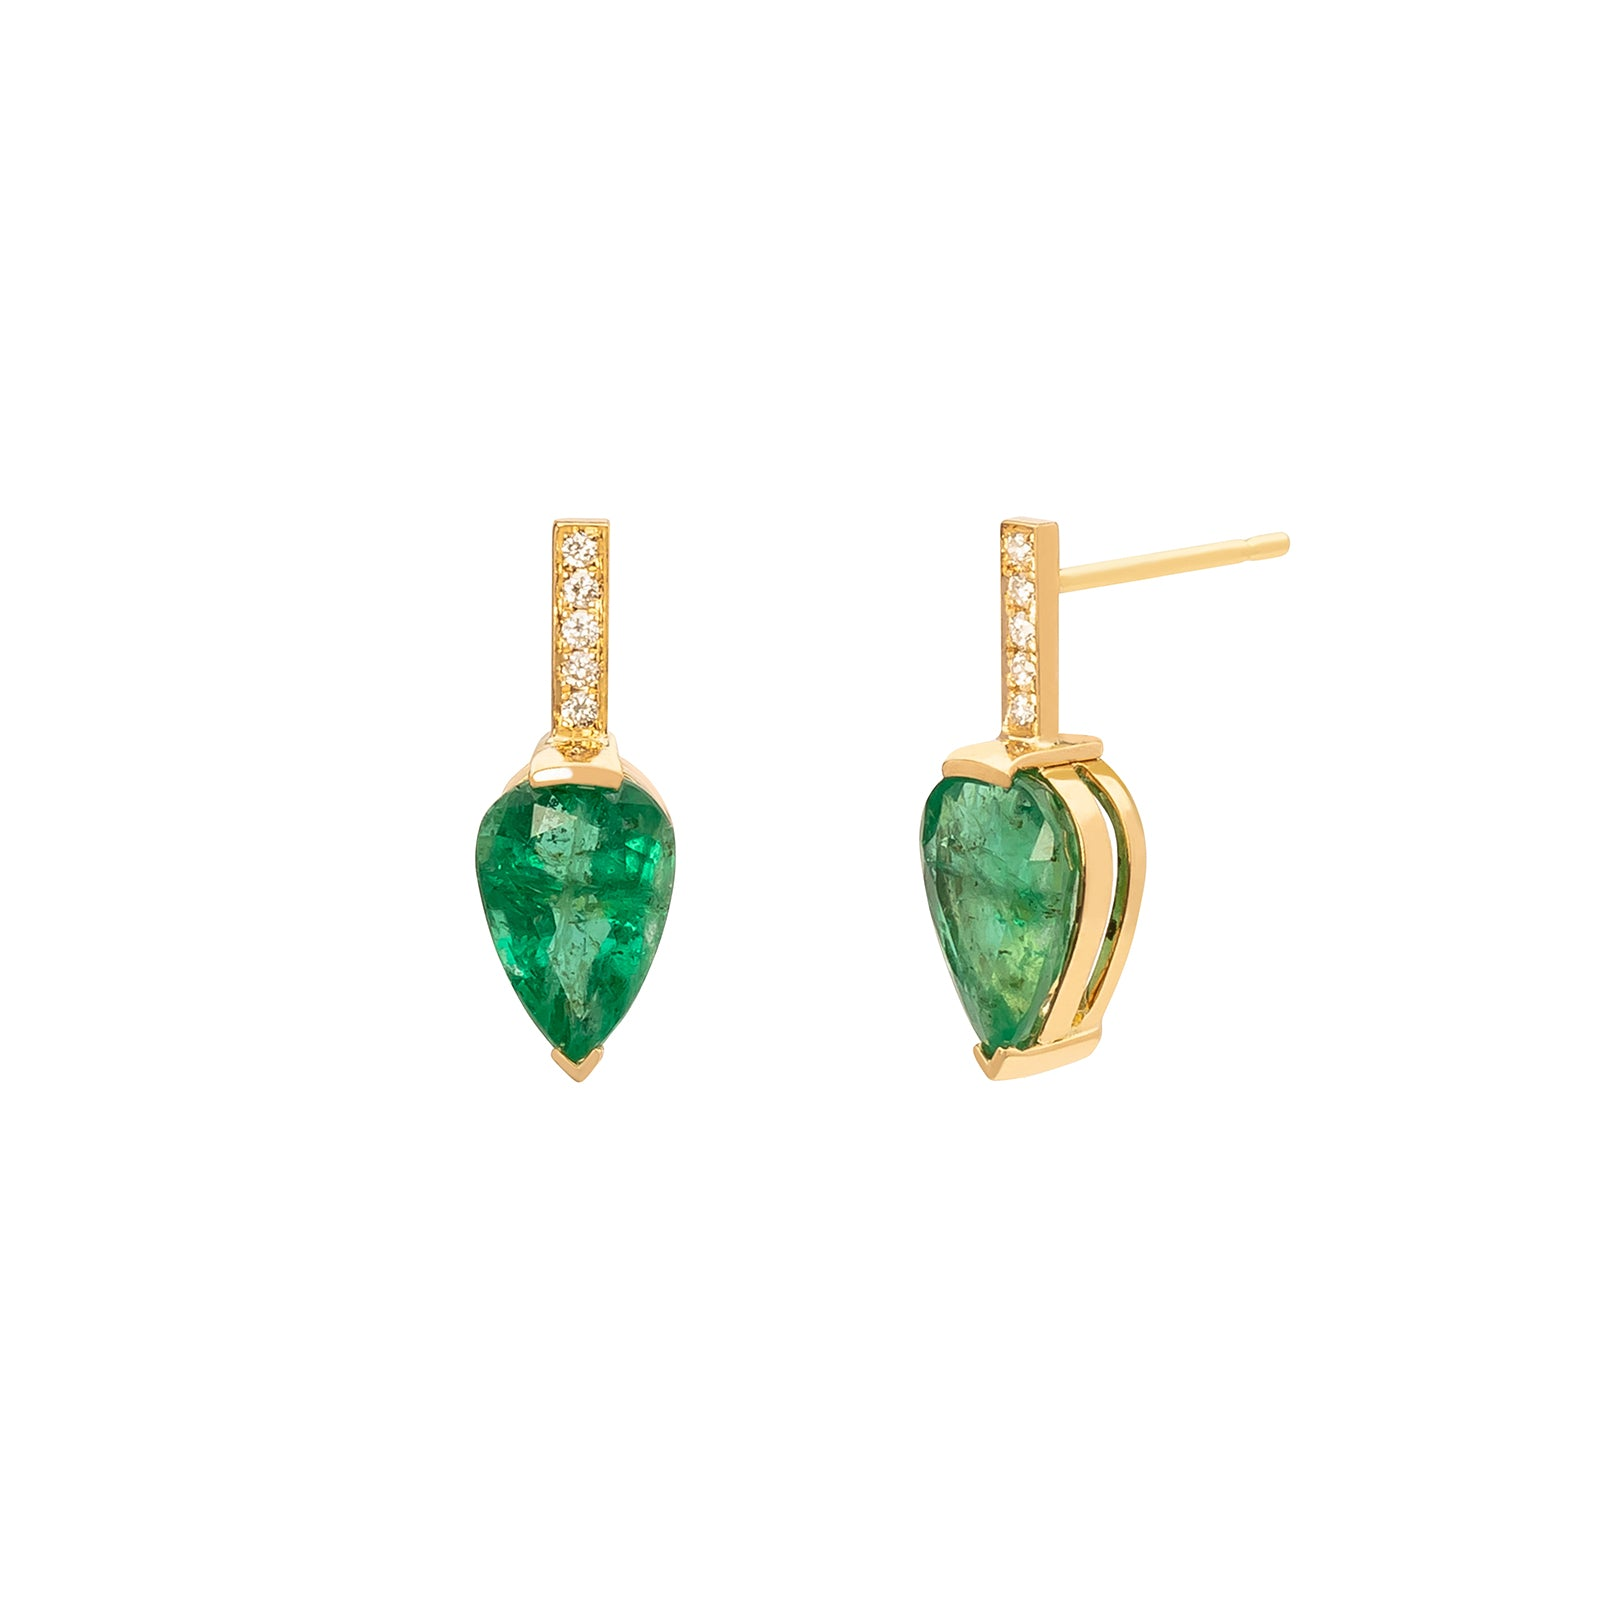 YI Collection Dewdrop Earrings - Emerald & Diamond - Earrings - Broken English Jewelry